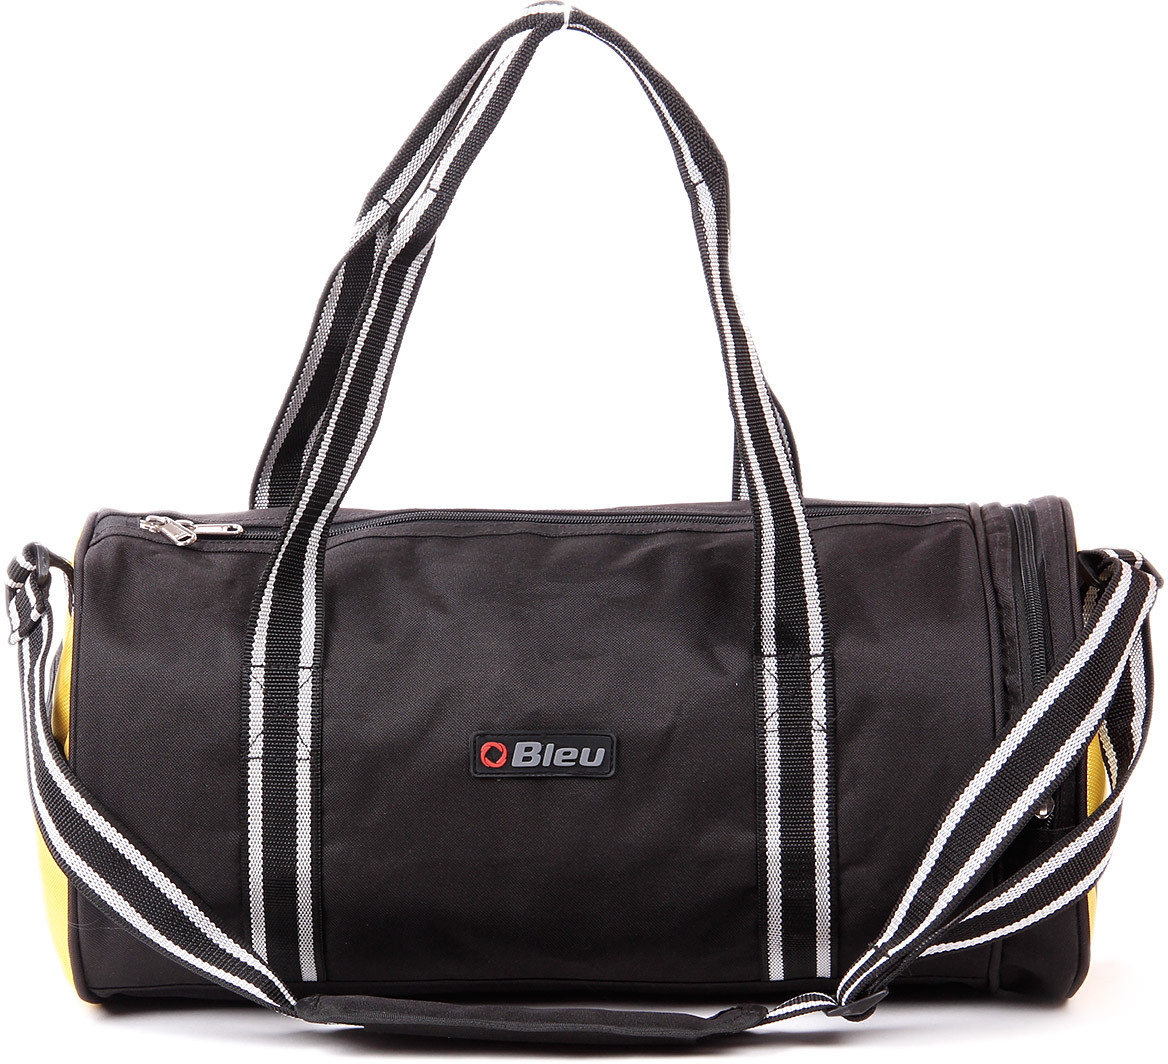 Gym Bag Flipkart: 45% OFF On Bleu Duffle Small Travel Bag